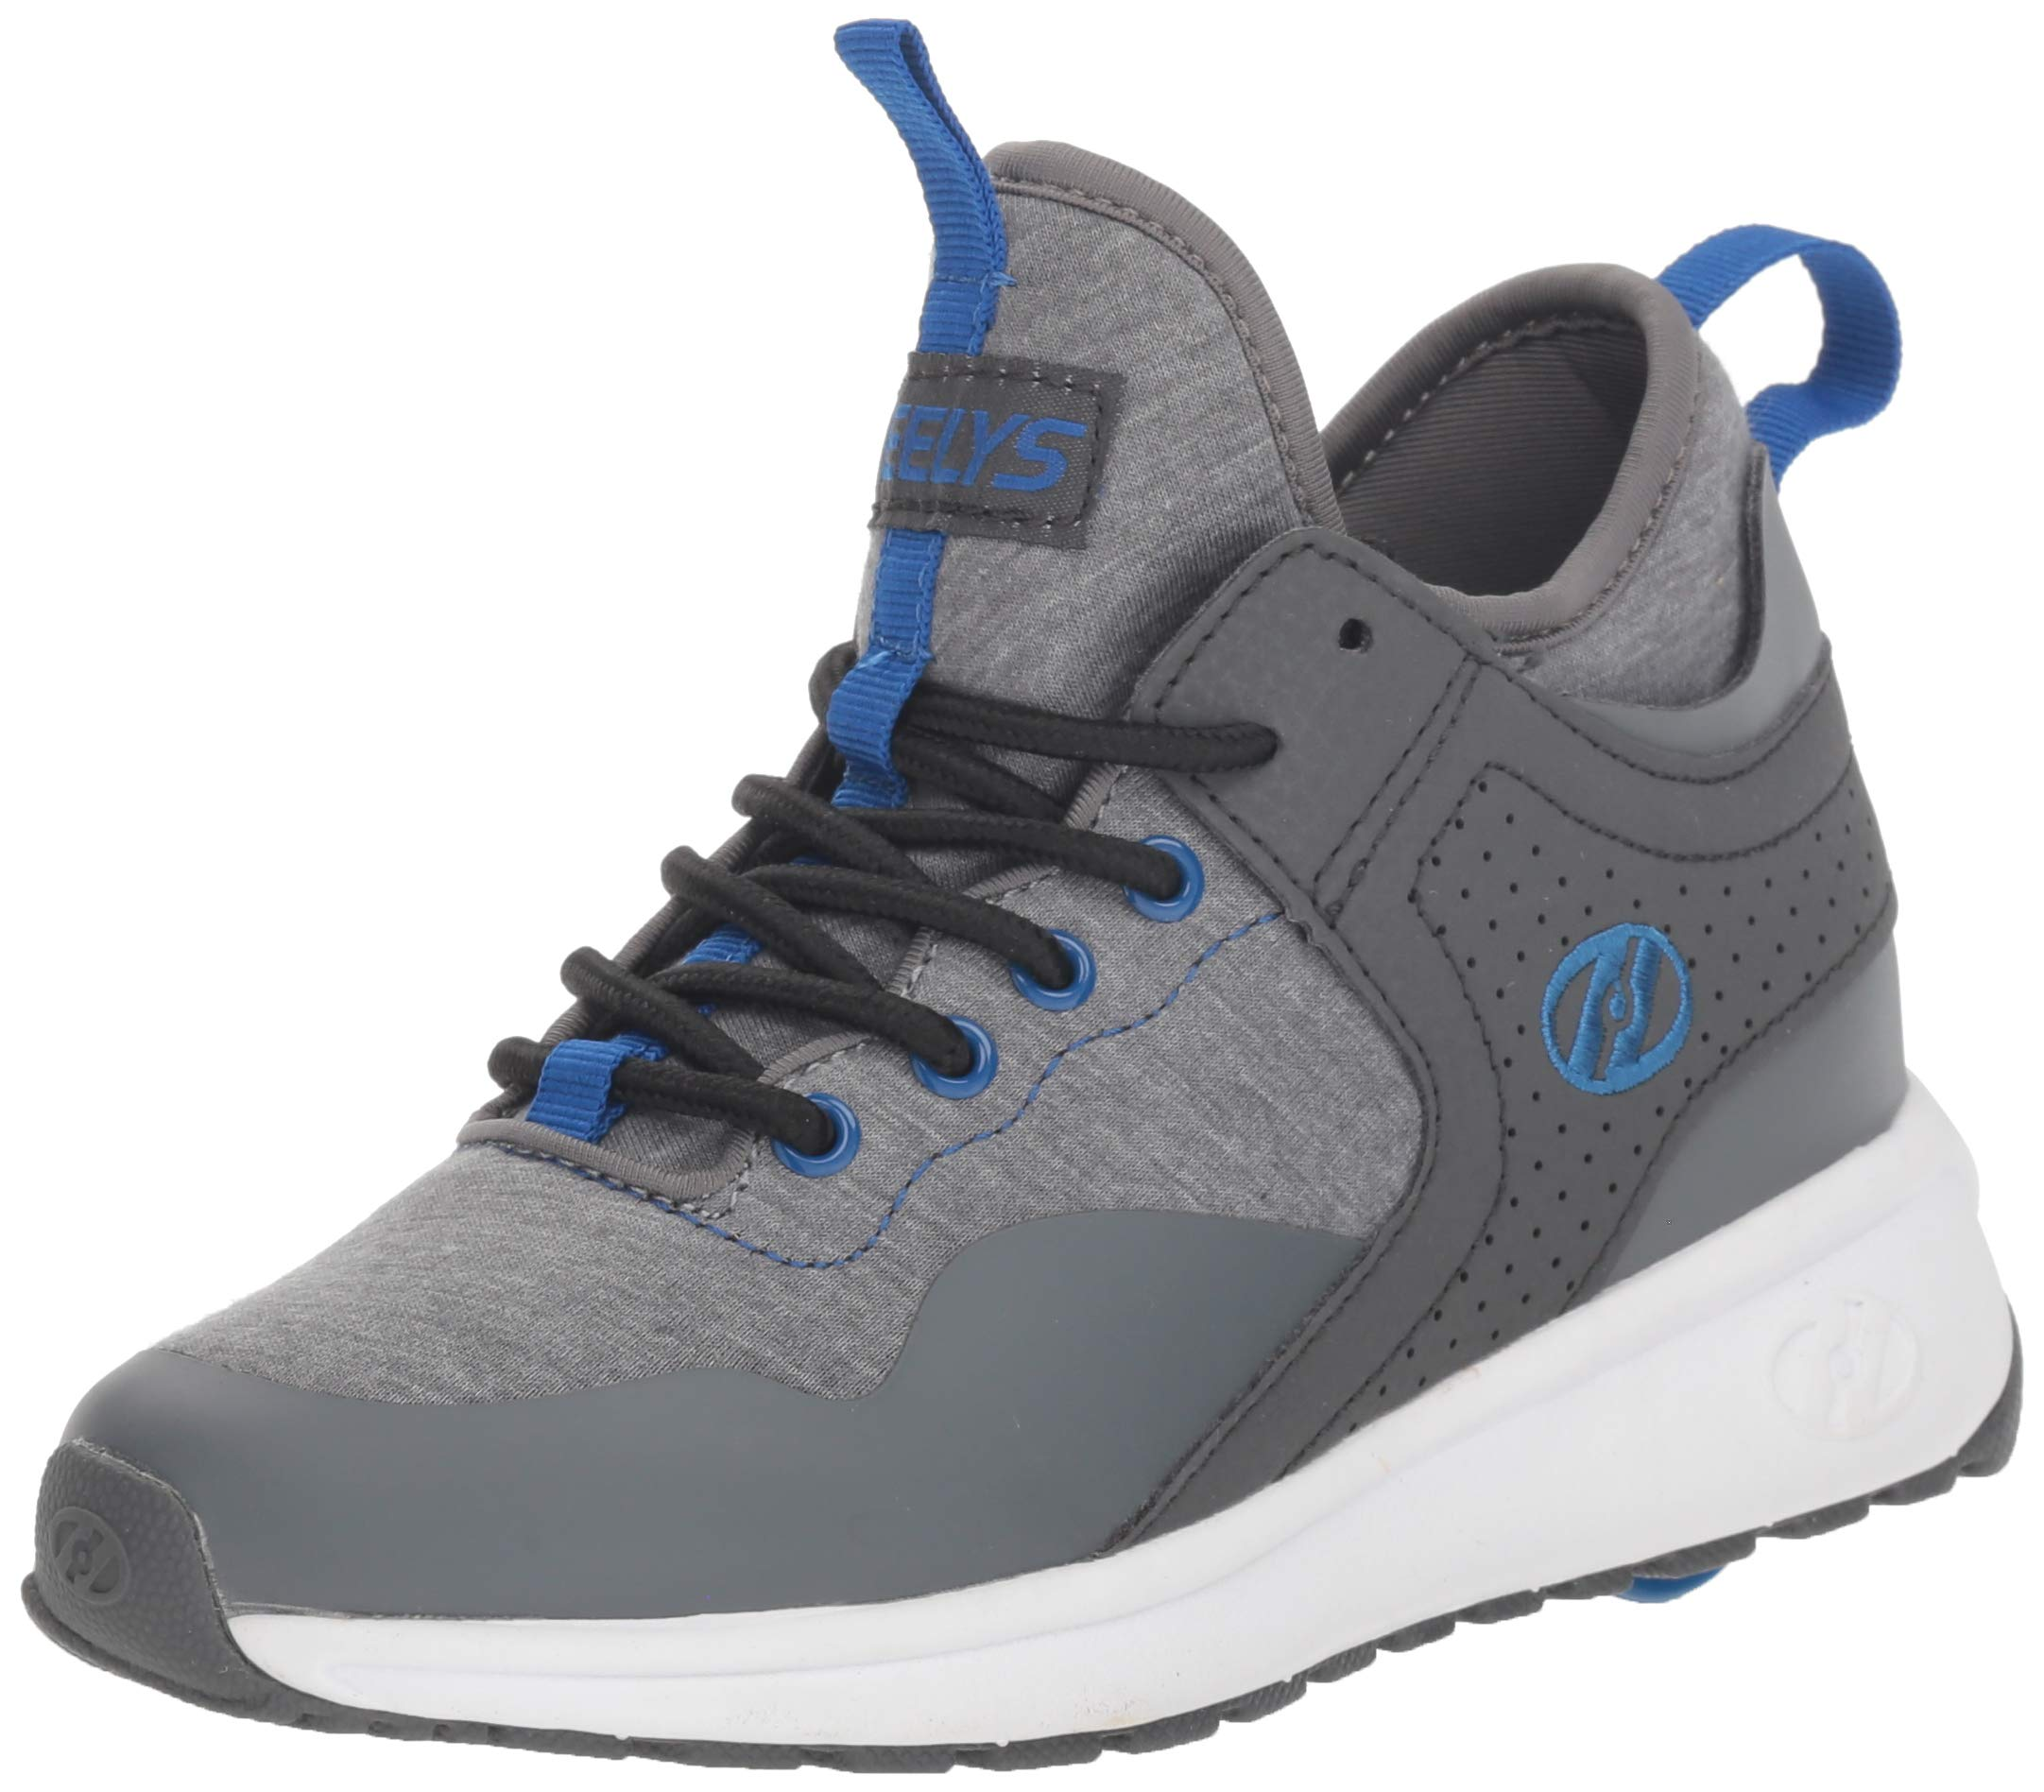 Heelys Boys' Piper Tennis Shoe Grey Heathered/Royal 6 M US Big Kid by Heelys (Image #1)